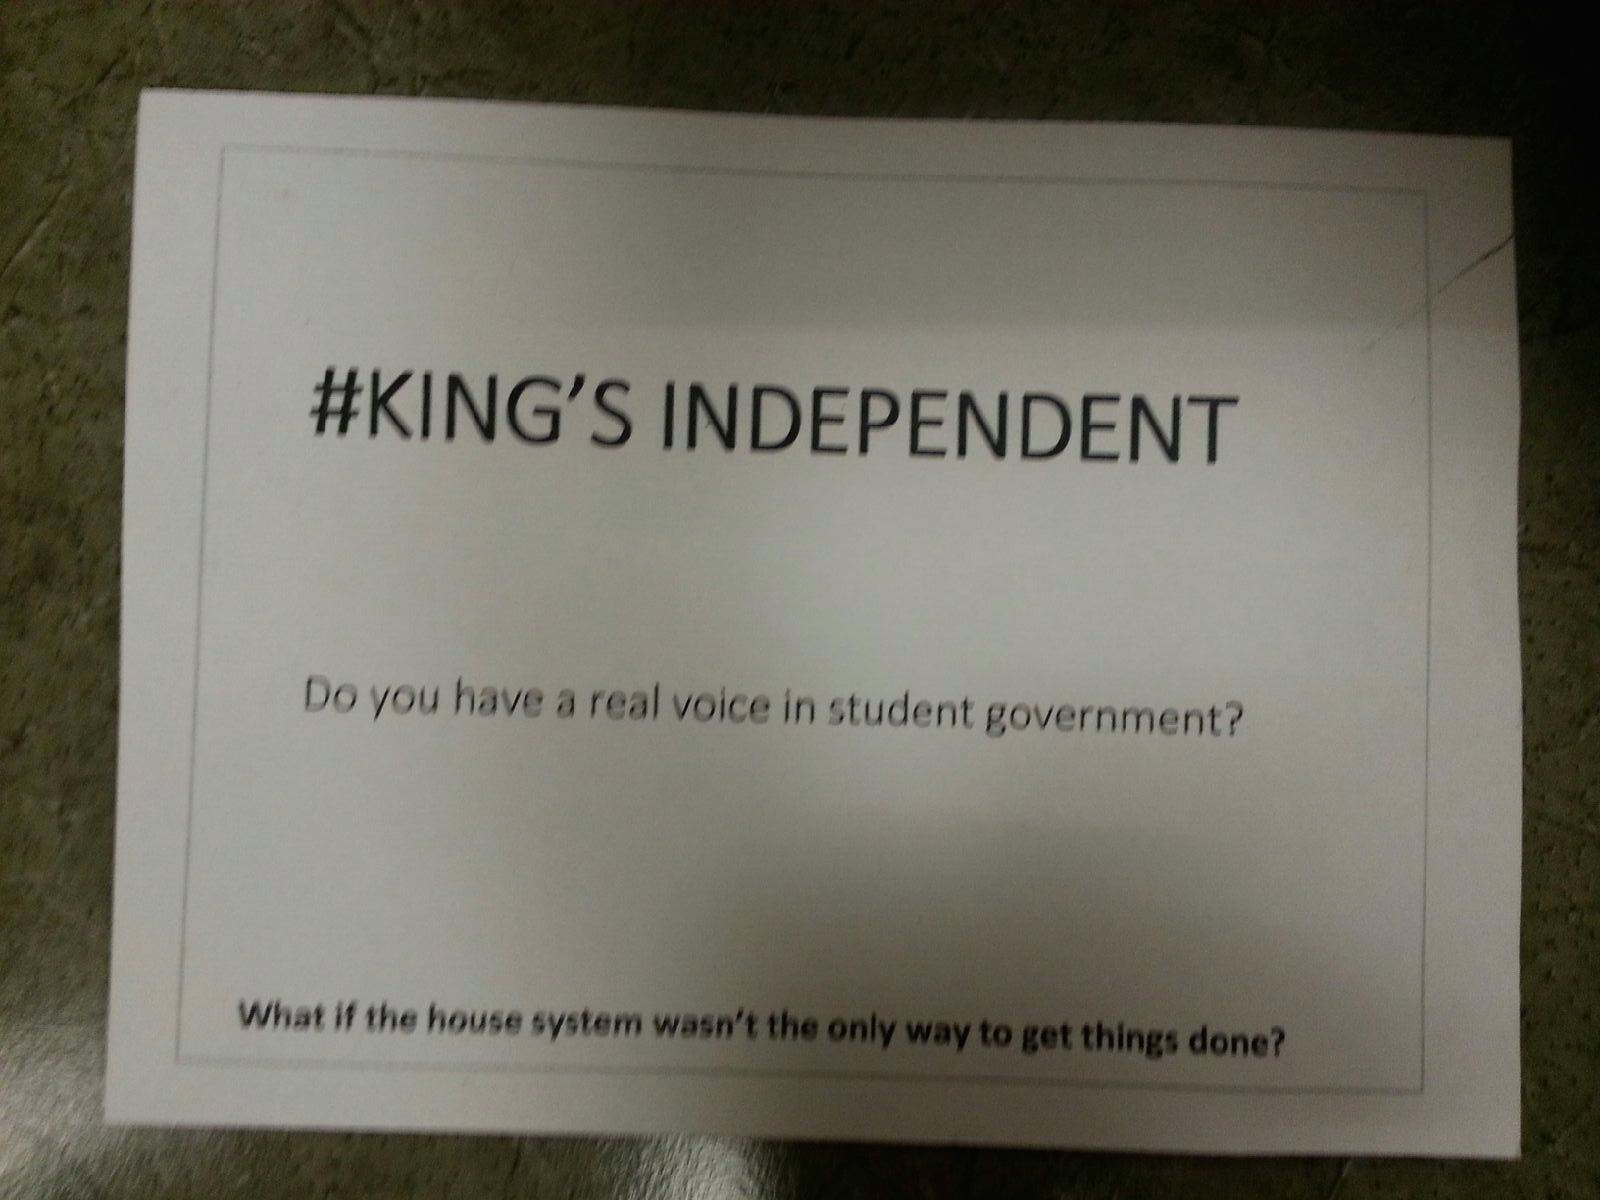 King's Independent